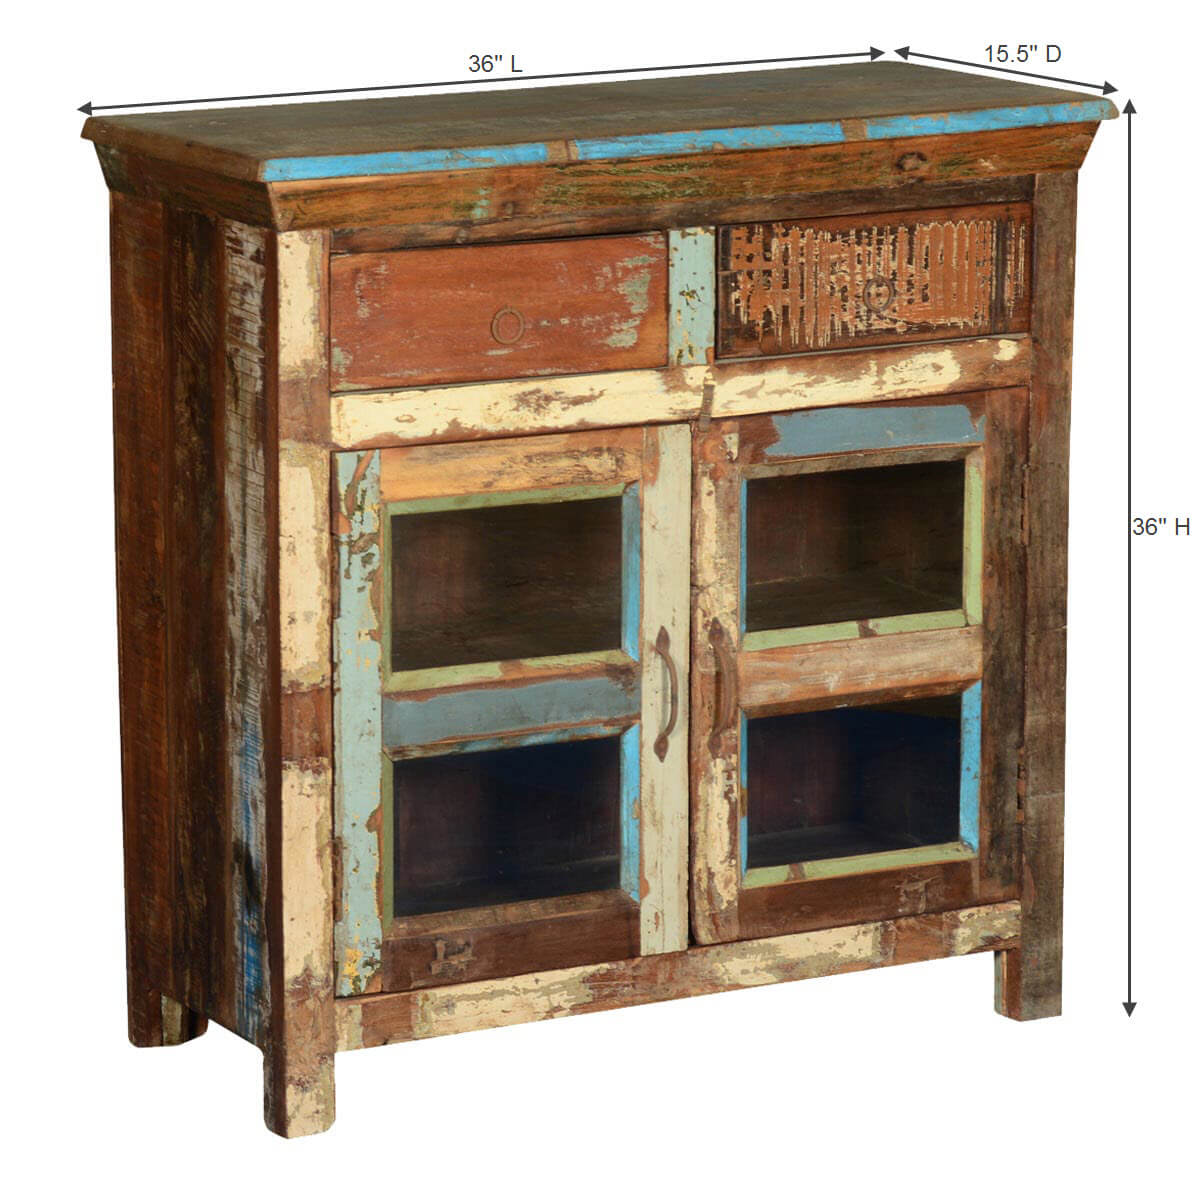 Rustic country reclaimed wood freestanding display buffet